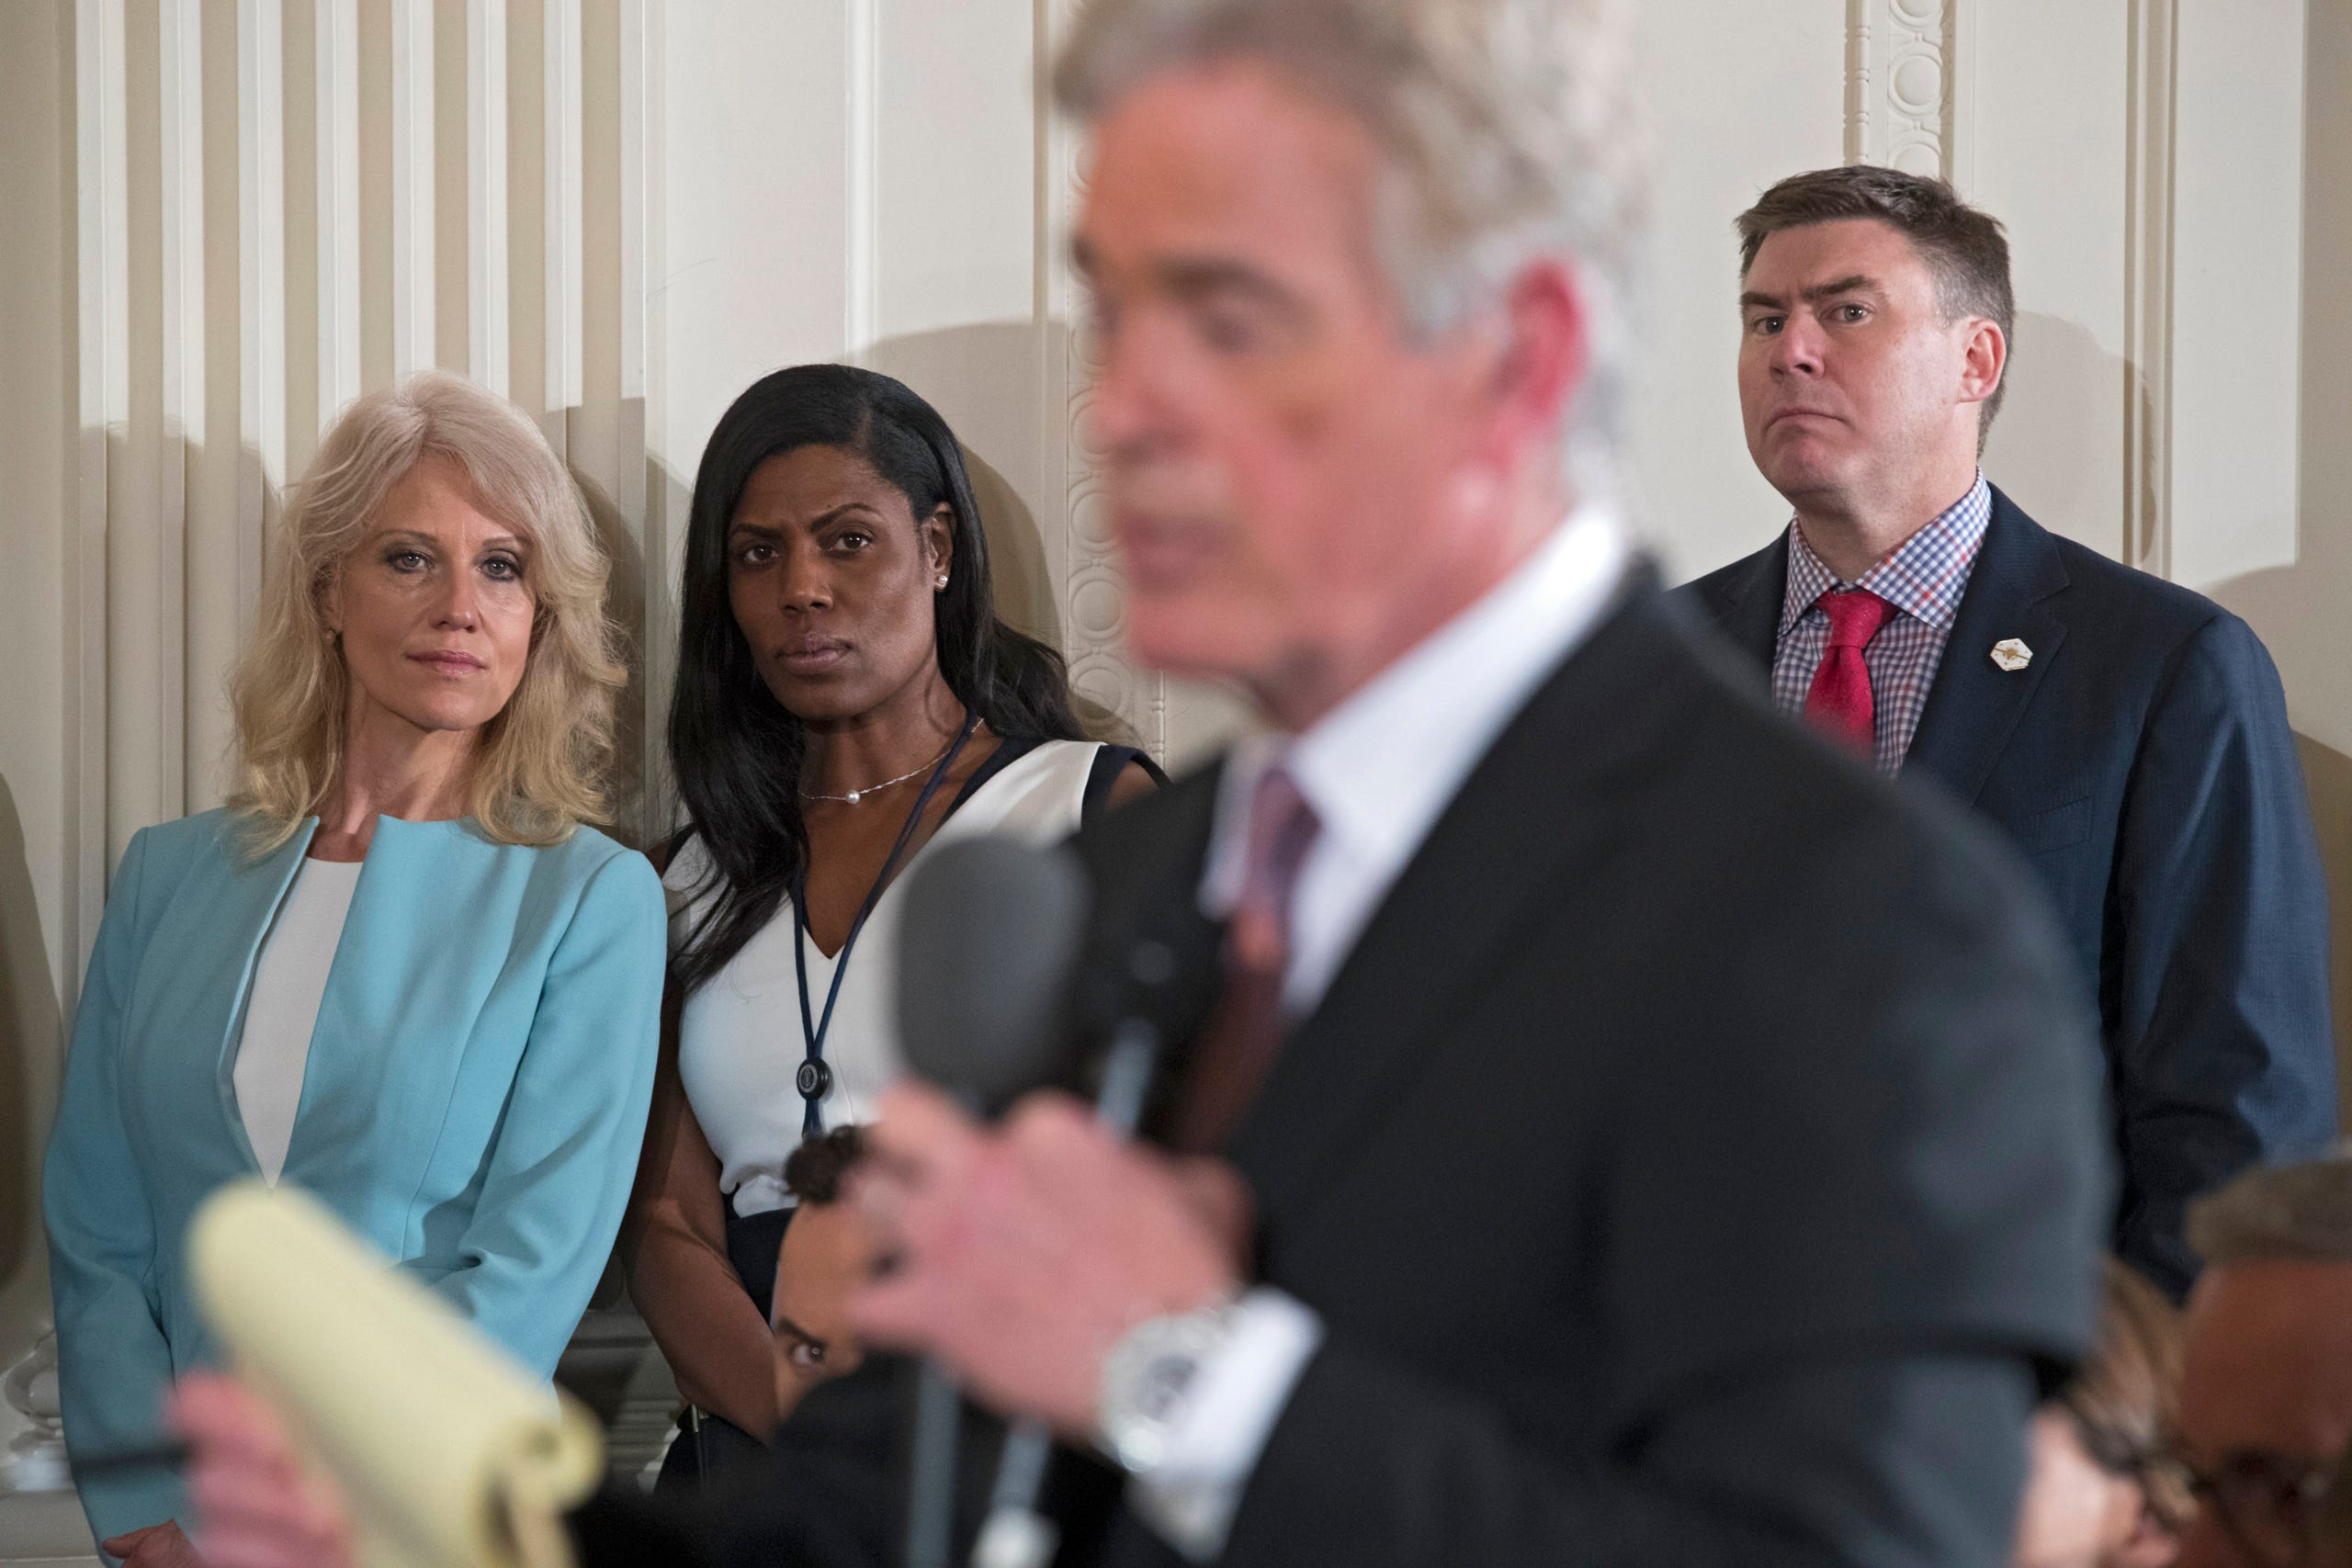 Mike Dubke (R) on May 30, 2017, confirmed his resignation as White House communications director.   Counselor to the US President Kellyanne Conway (L) and Director of Communications for the Office of Public Liaison Omarosa Manigault (2-L) and Dubke listen as a reporter asks a question during a joint press conference in the East Room of the White House in Washington, on April 20, 2017.